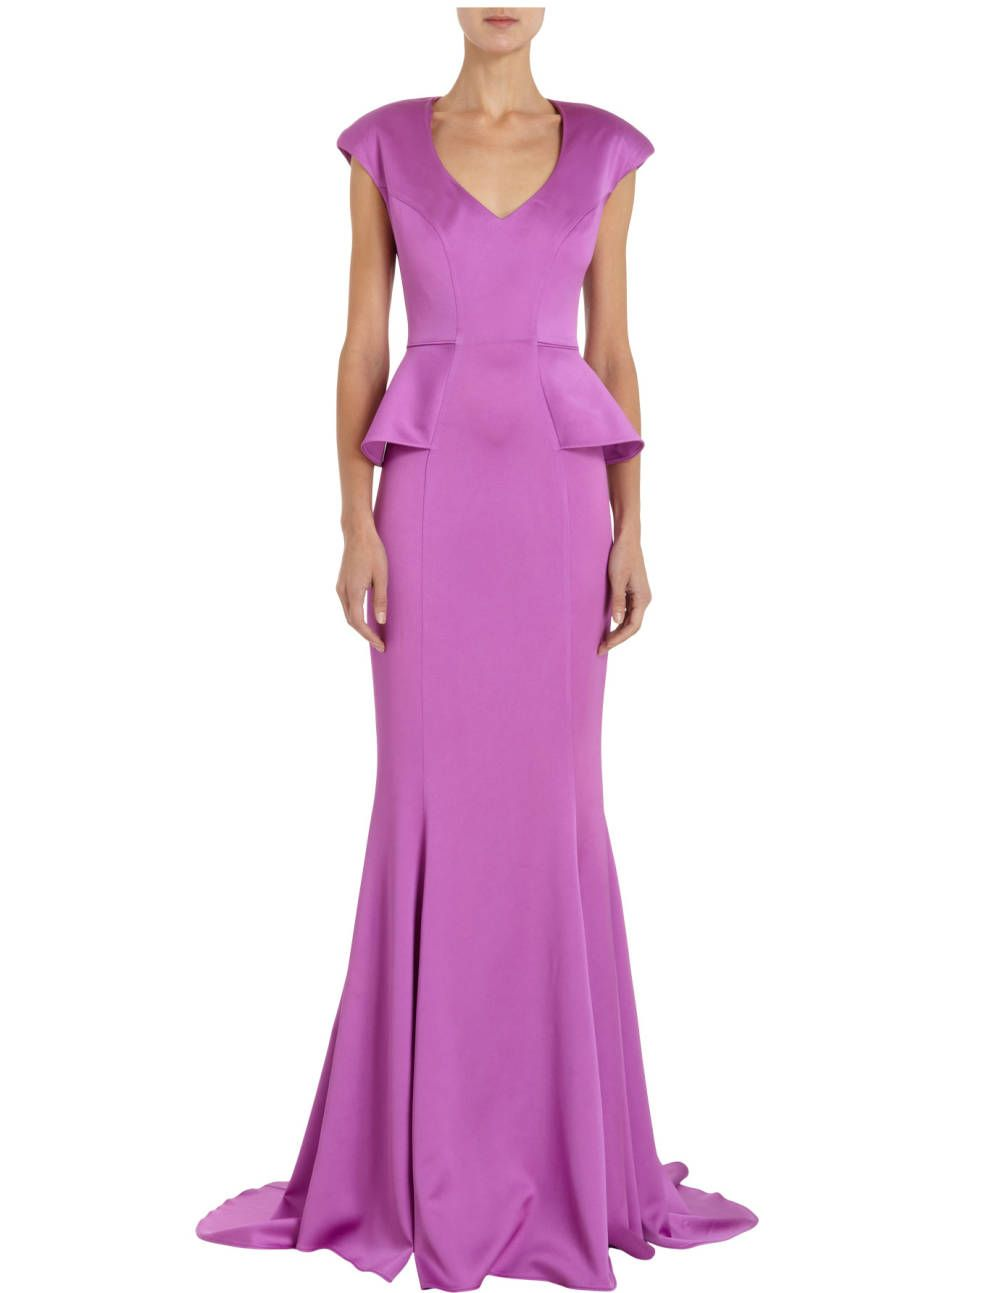 Our Favorite Gowns For Gala Season | Pinterest | Safiyaa, Black tie ...